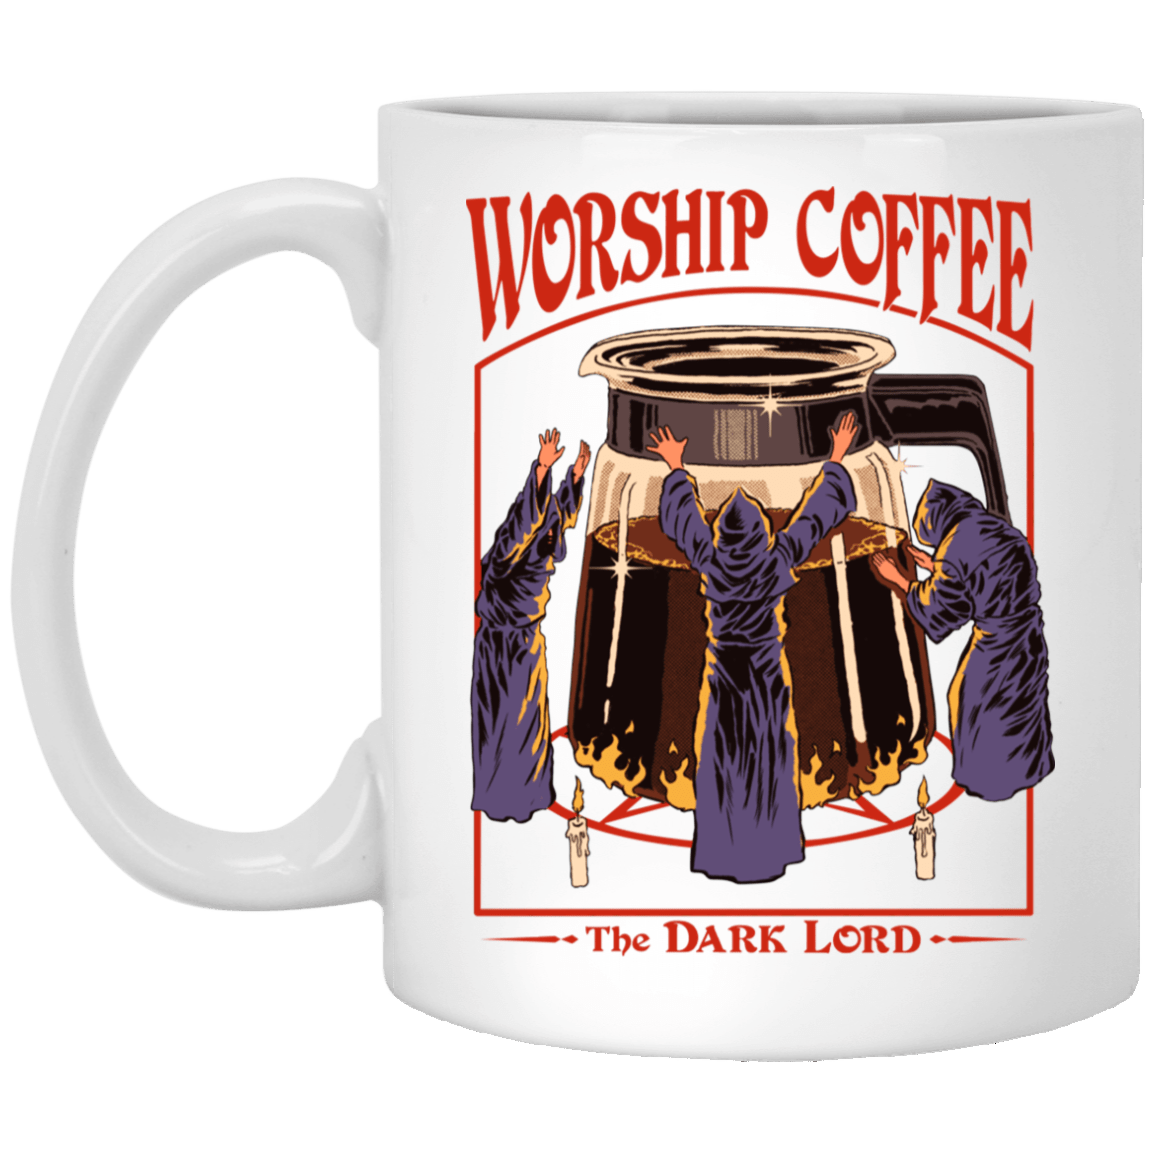 Worship Coffee The Dark Lord Mug 1005-9786-89726602-47417 - Tee Ript